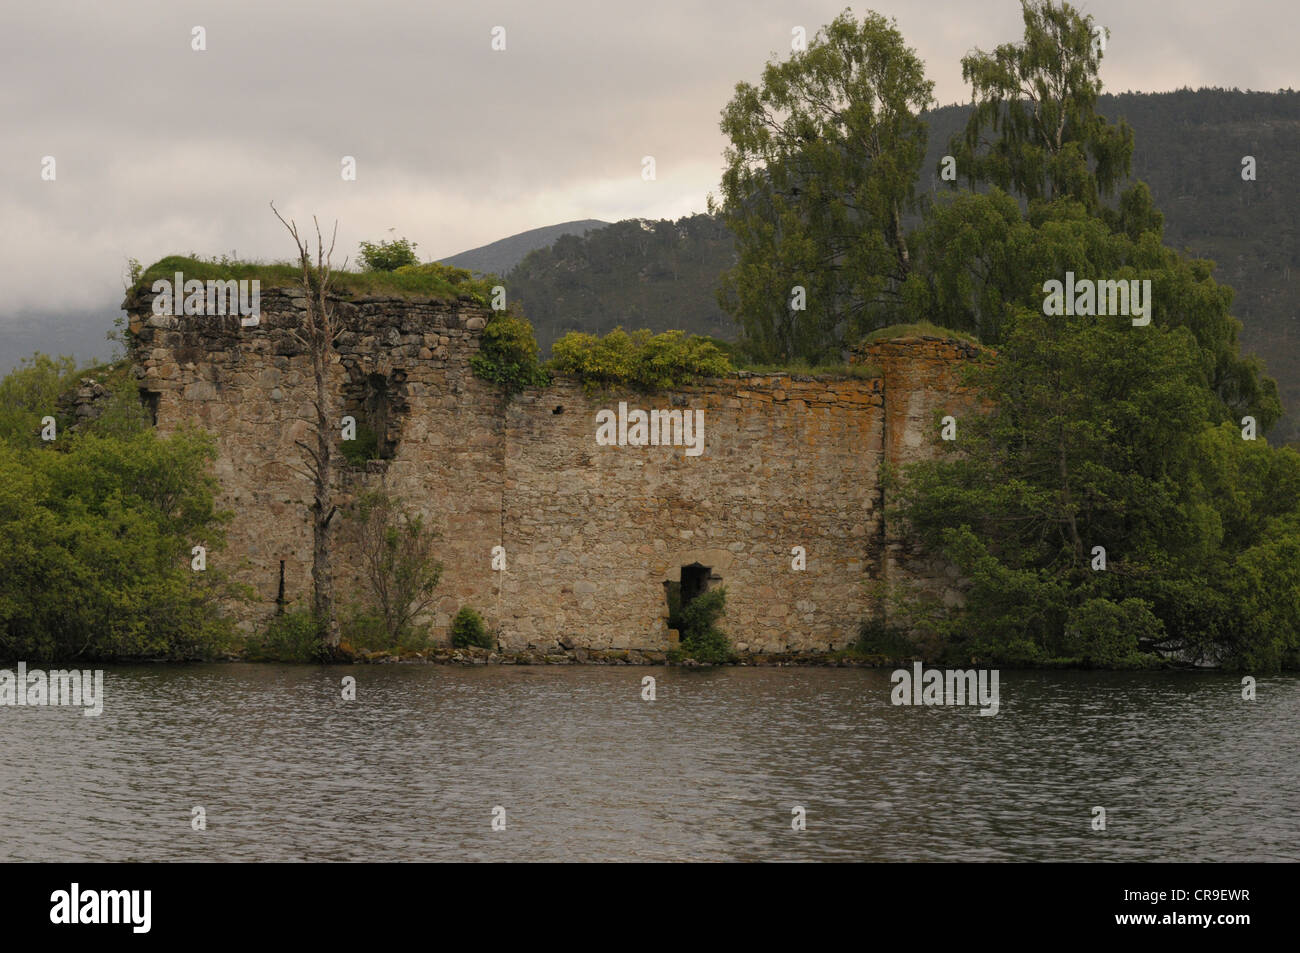 Castle in the middle of the loch at Loch an Eilein, Scotland. - Stock Image